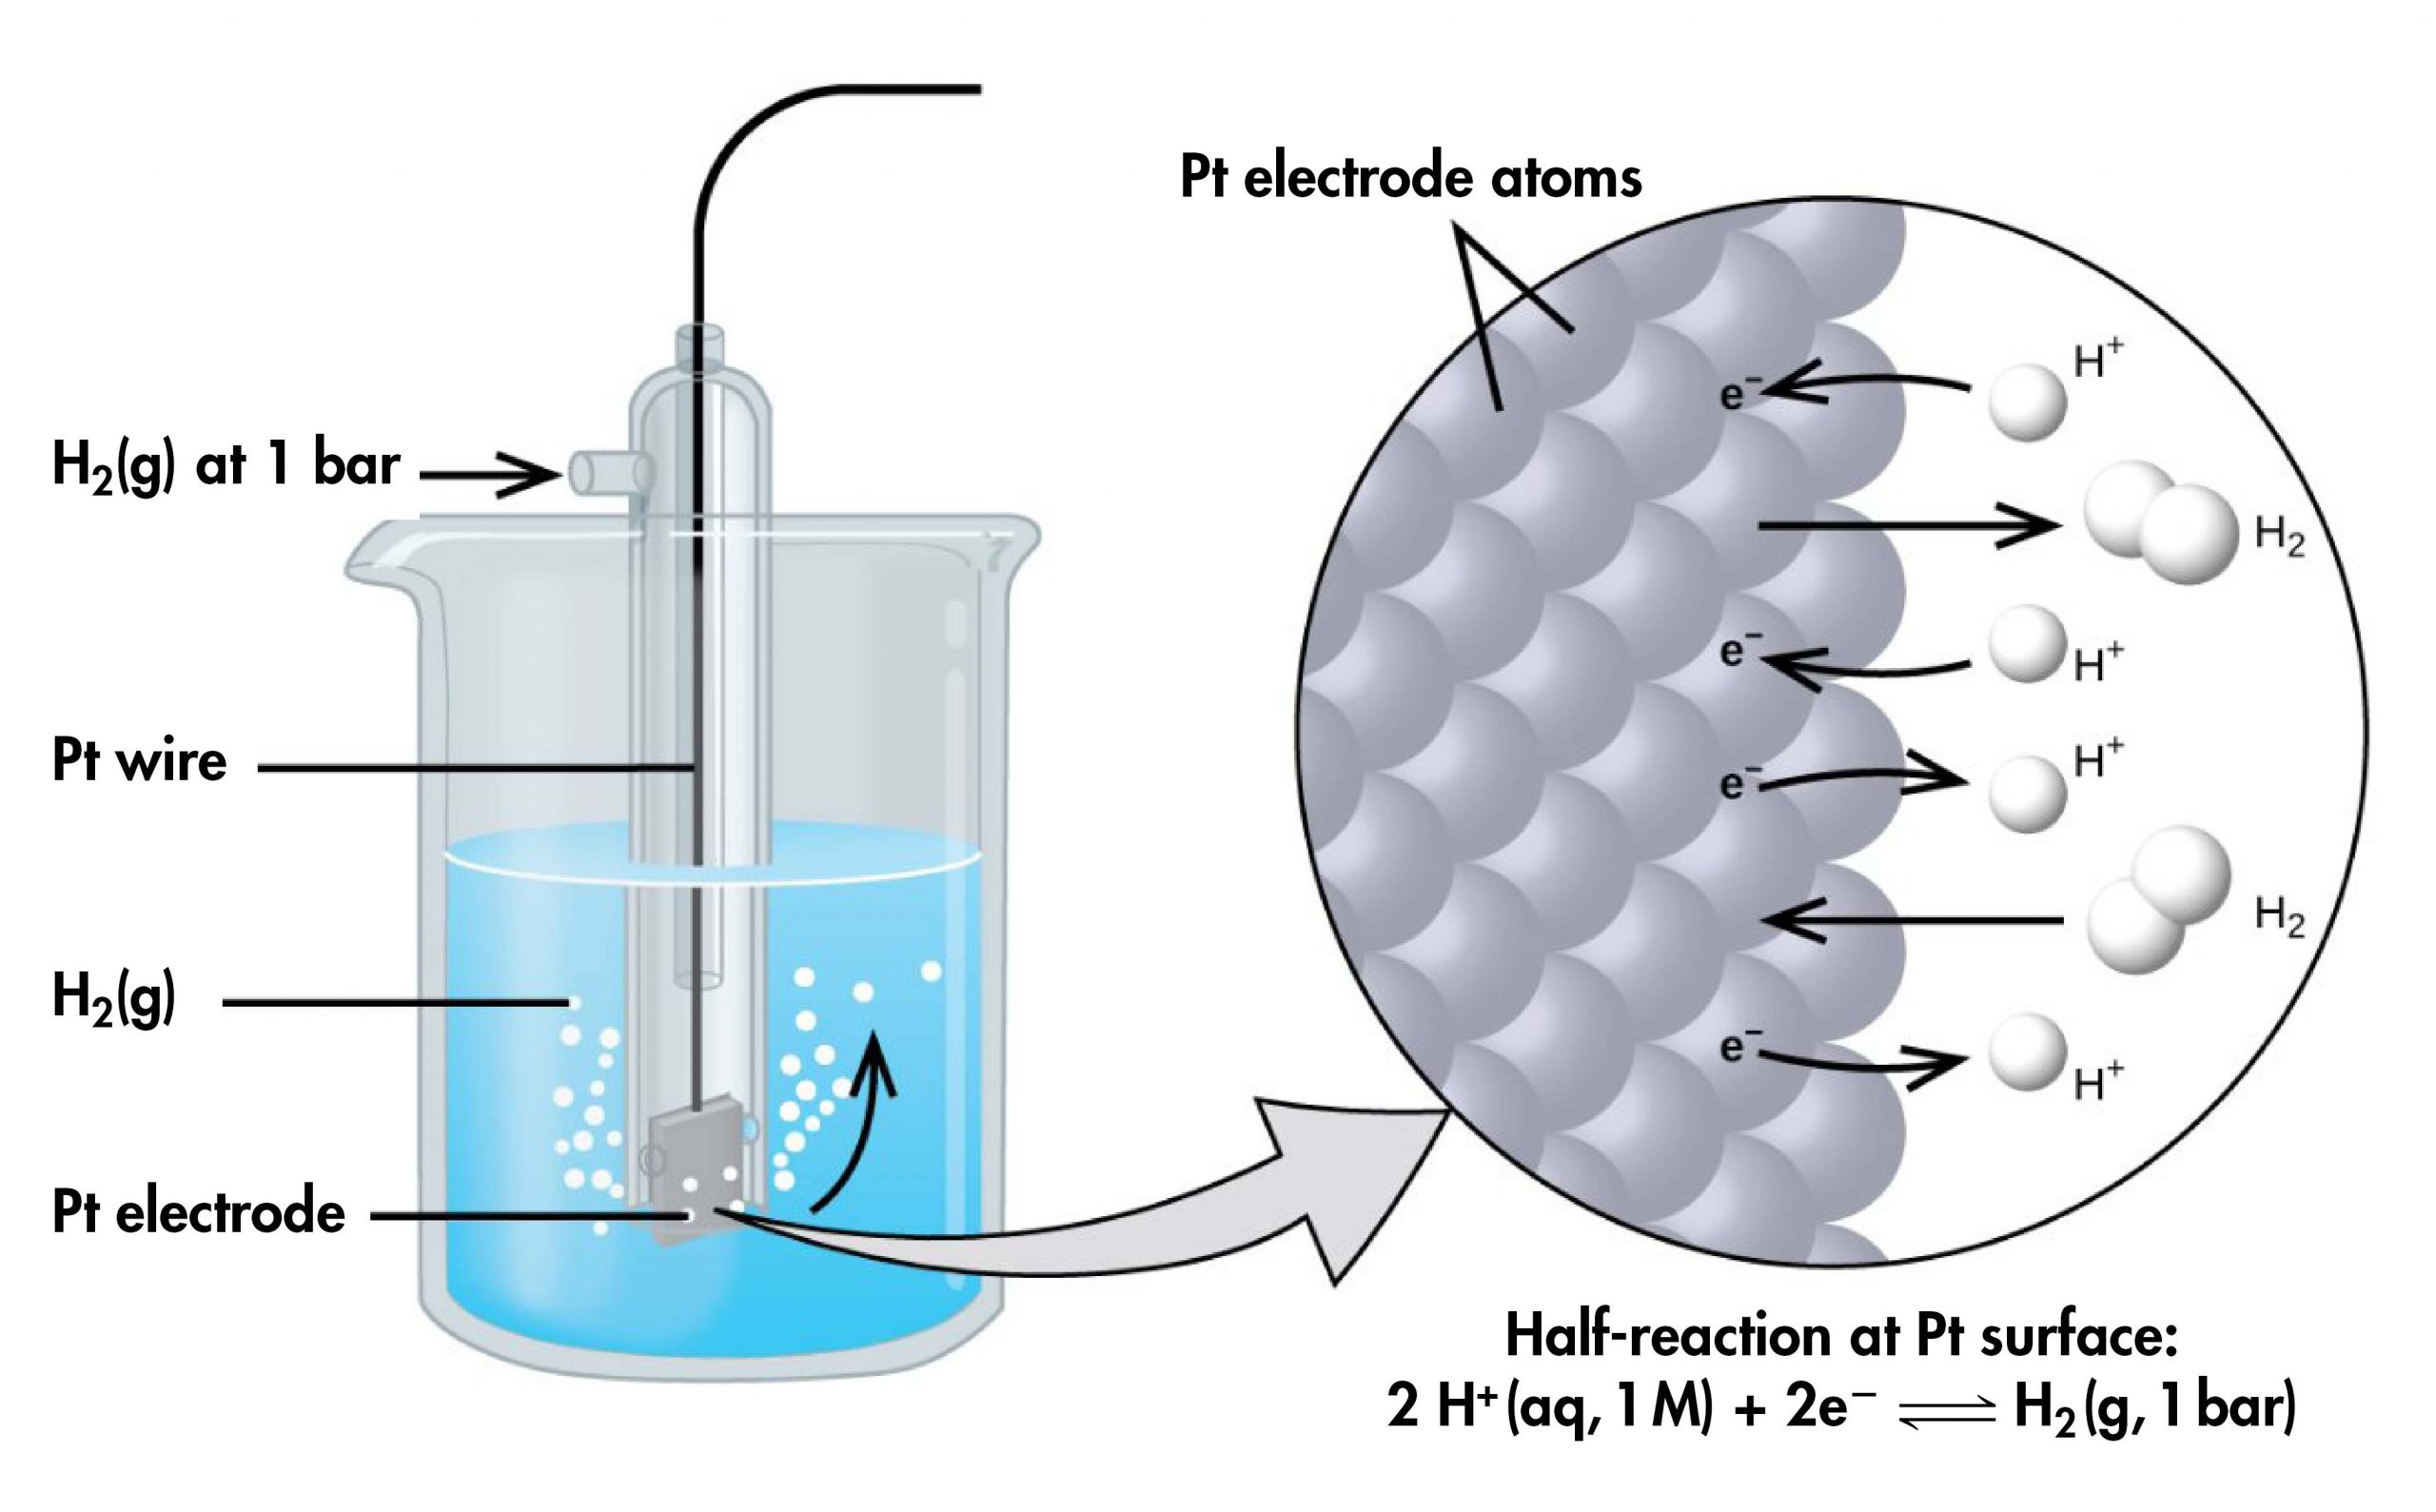 """The figure shows a beaker just over half full of a blue liquid. A glass tube is partially submerged in the liquid. Bubbles, which are labeled """"H subscript 2 ( g )"""" are rising from the dark grey square, labeled """"P t electrode"""" at the bottom of the tube. A curved arrow points up to the right, indicating the direction of the bubbles. A black wire which is labeled """"P t wire"""" extends from the dark grey square up the interior of the tube through a small port at the top. A second small port extends out the top of the tube to the left. An arrow points to the port opening from the left. The base of this arrow is labeled """"H subscript 2 ( g ) at 1 b a r ."""" A light grey arrow points to a diagram in a circle at the right that illustrates the surface of the P t electrode in a magnified view. P t atoms are illustrated as a uniform cluster of grey spheres which are labeled """"P t electrode atoms."""" On the grey atom surface, the label """"e superscript negative"""" is shown 4 times in a nearly even vertical distribution to show electrons on the P t surface. A curved arrow extends from a white sphere labeled """"H superscript plus"""" at the right of the P t atoms to the uppermost electron shown. Just below, a straight arrow extends from the P t surface to the right to a pair of linked white spheres which are labeled """"H subscript 2."""" A curved arrow extends from a second white sphere labeled """"H superscript plus"""" at the right of the P t atoms to the second electron shown. A curved arrow extends from the third electron on the P t surface to the right to a white sphere labeled """"H superscript plus."""" Just below, an arrow points left from a pair of linked white spheres which are labeled """"H subscript 2"""" to the P t surface. A curved arrow extends from the fourth electron on the P t surface to the right to a white sphere labeled """"H superscript plus."""" Beneath this atomic view is the label """"Half-reaction at P t surface: 2 H superscript plus ( a q, 1 M ) plus 2 e superscript negative right pointing arrow H subs"""